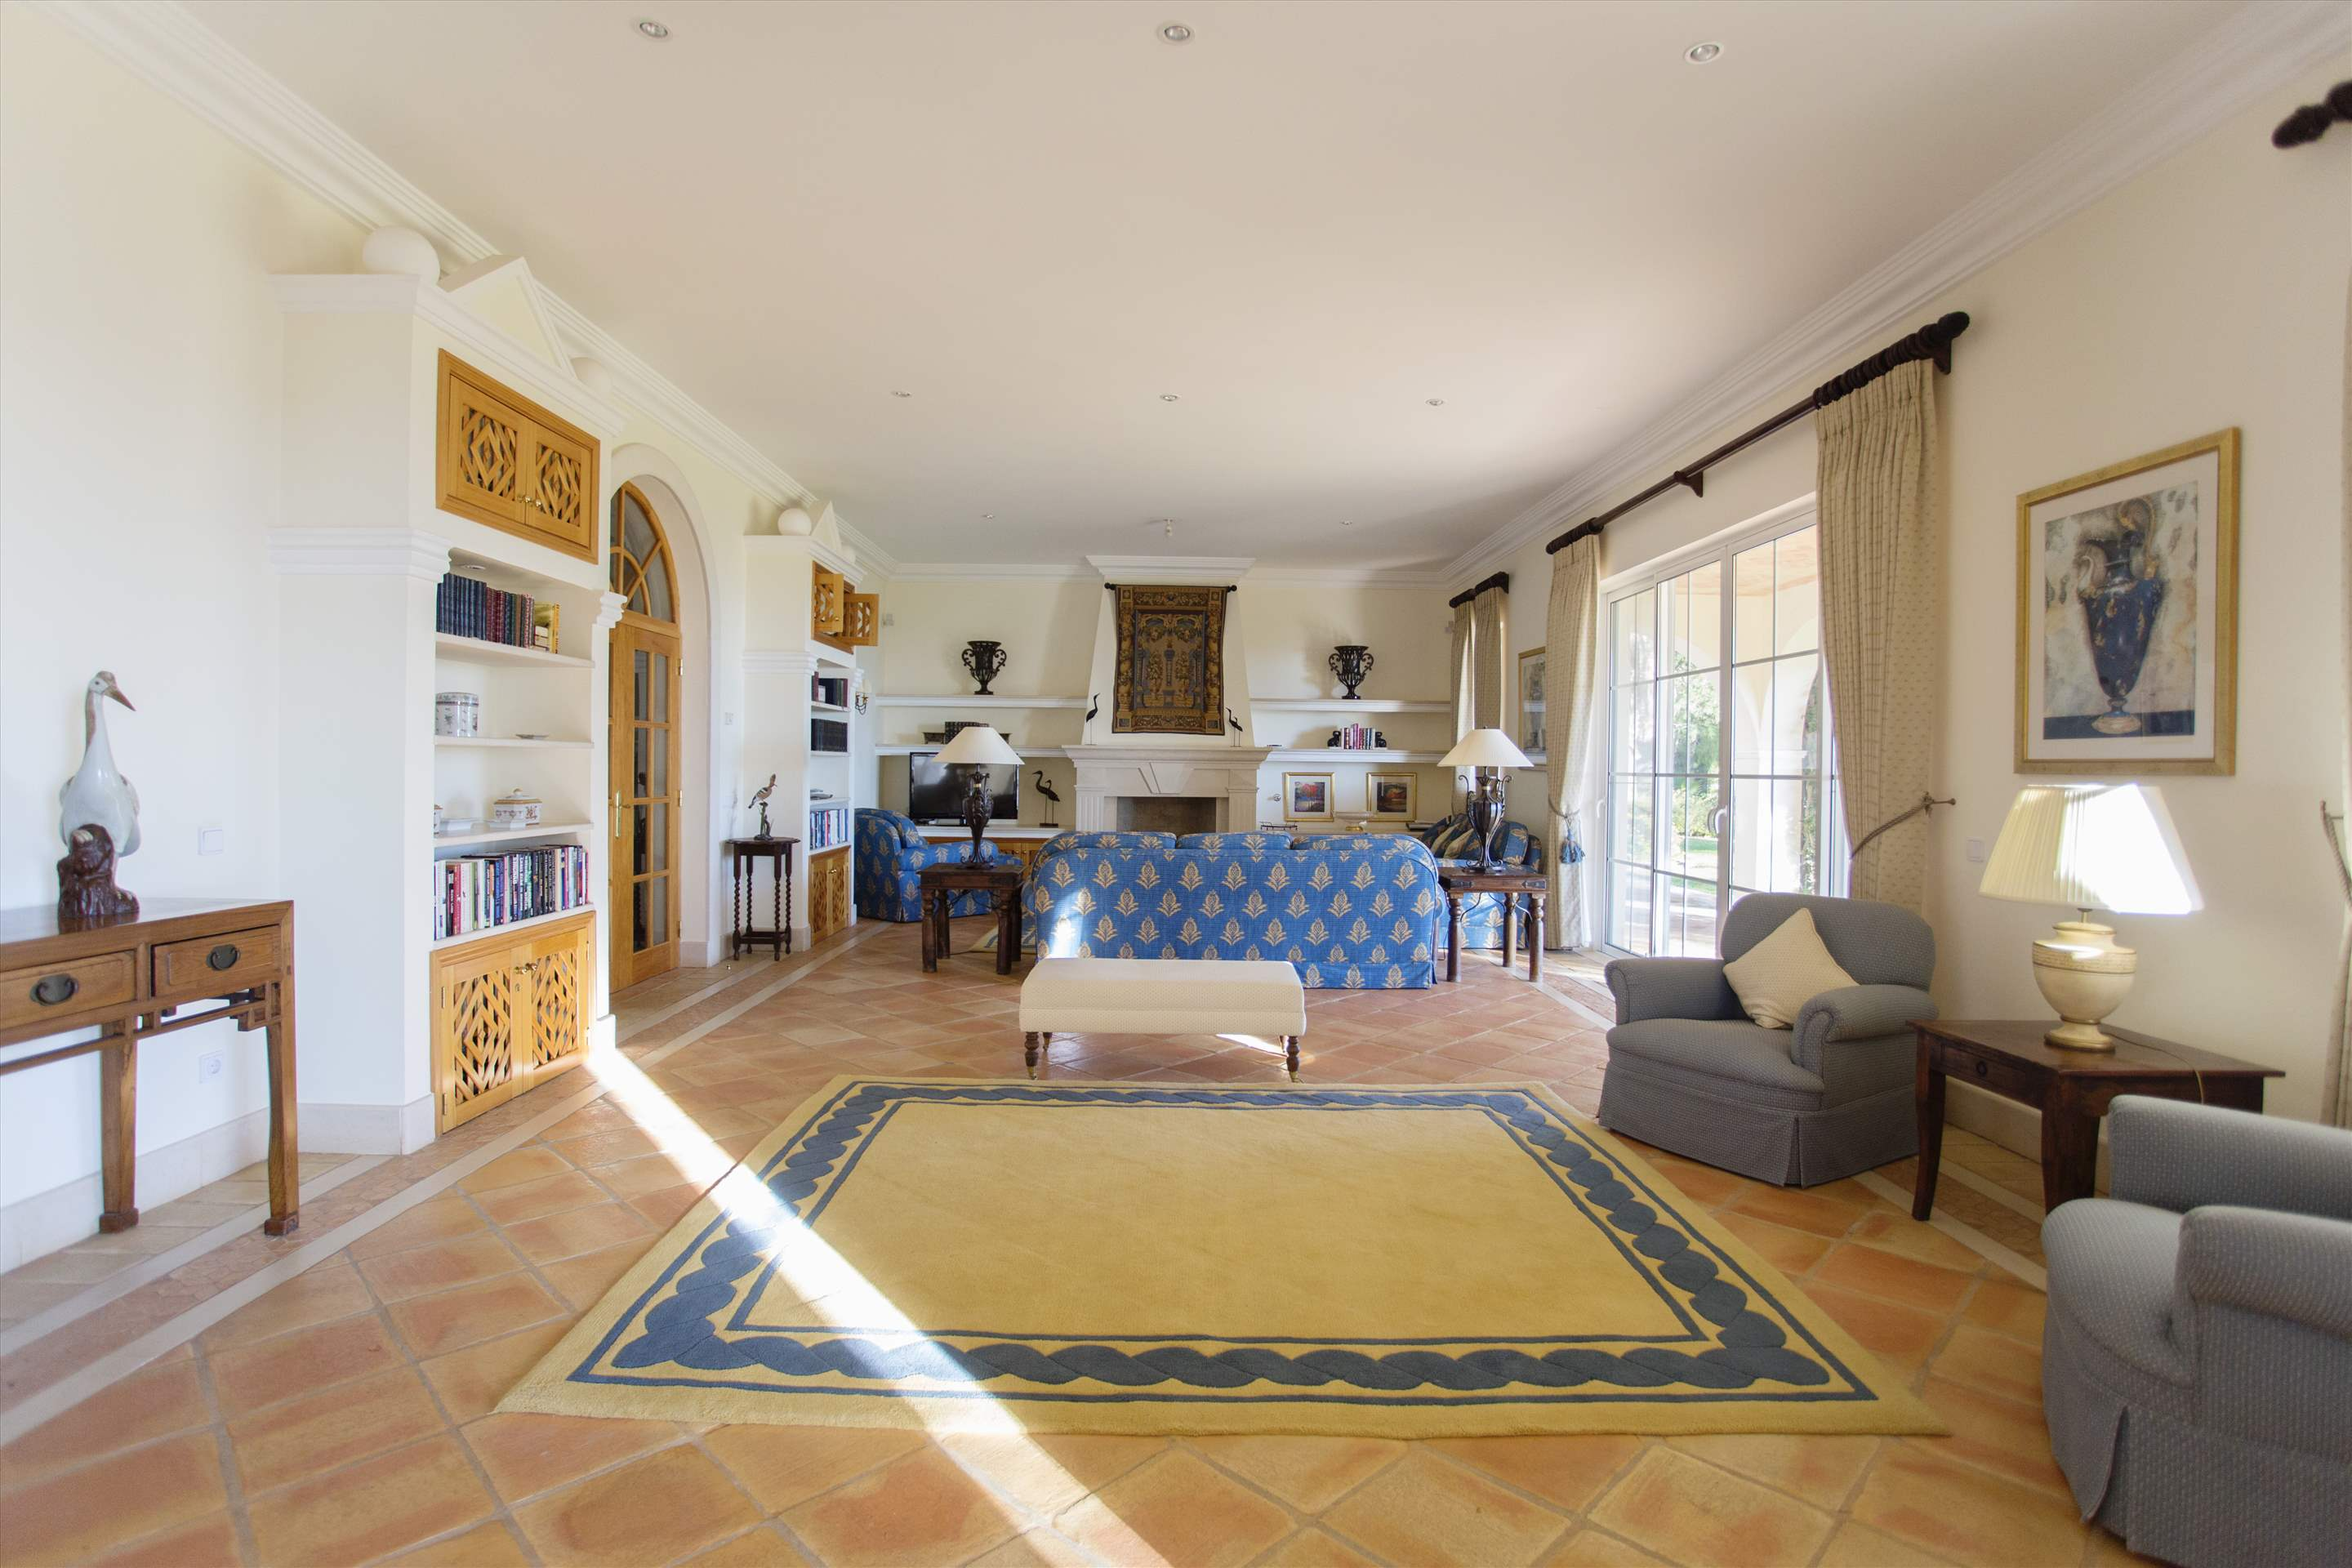 Villa Palmeiras Altas, 5 bedroom villa in Quinta do Lago, Algarve Photo #11